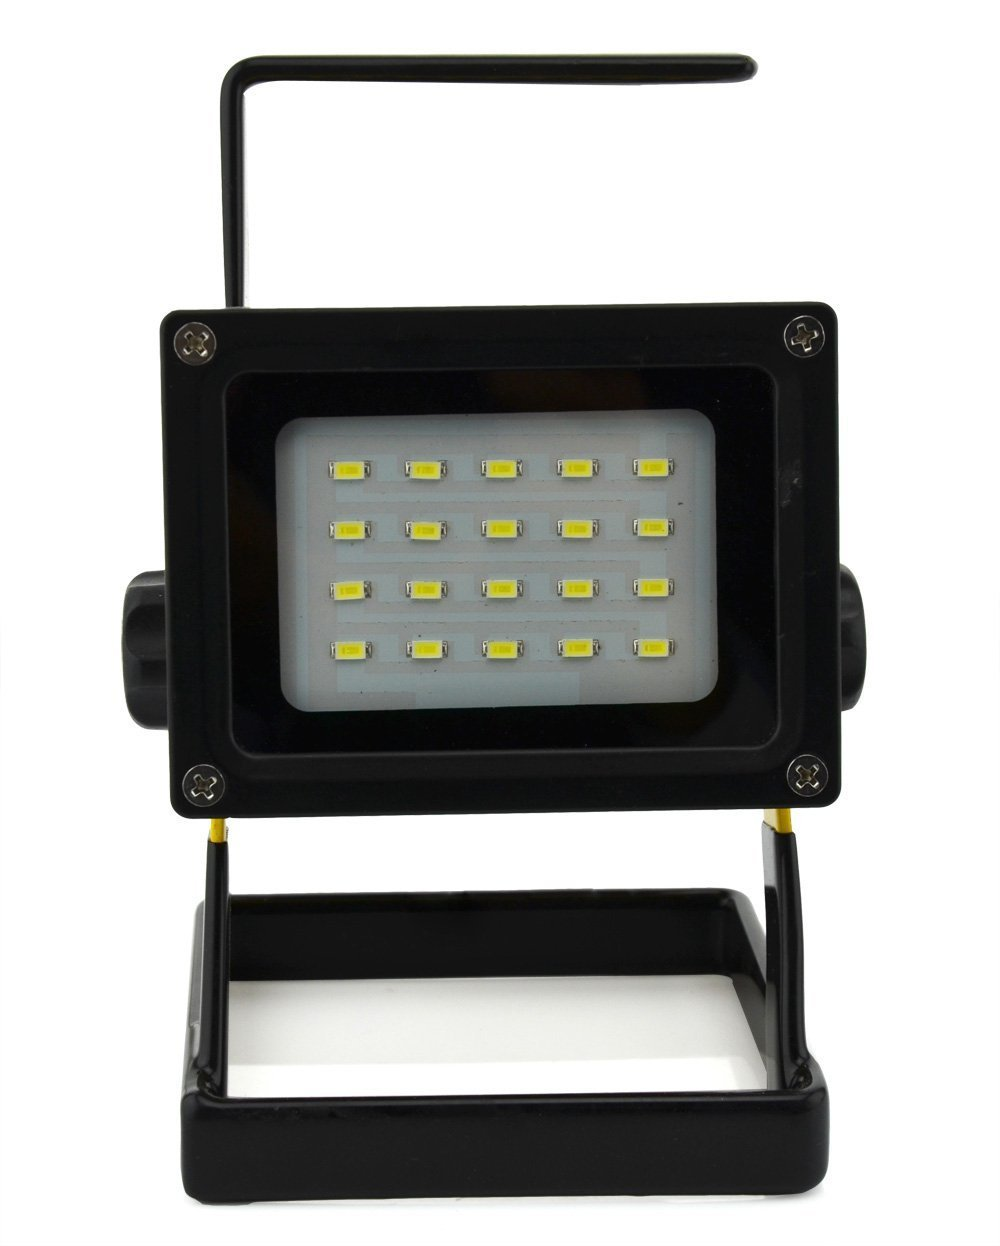 WindFire Durable Waterproof Emergency Light Trouble Light 20 leds 30W 2400LM CREE XM-L LED Flood Search Light - Portable Rechargeable Cordless Work Light w/ Stand 3 X 18650 Battery Powered (Included) IP65 Weather Resistant Flood Spot Working Light Lamp Fl